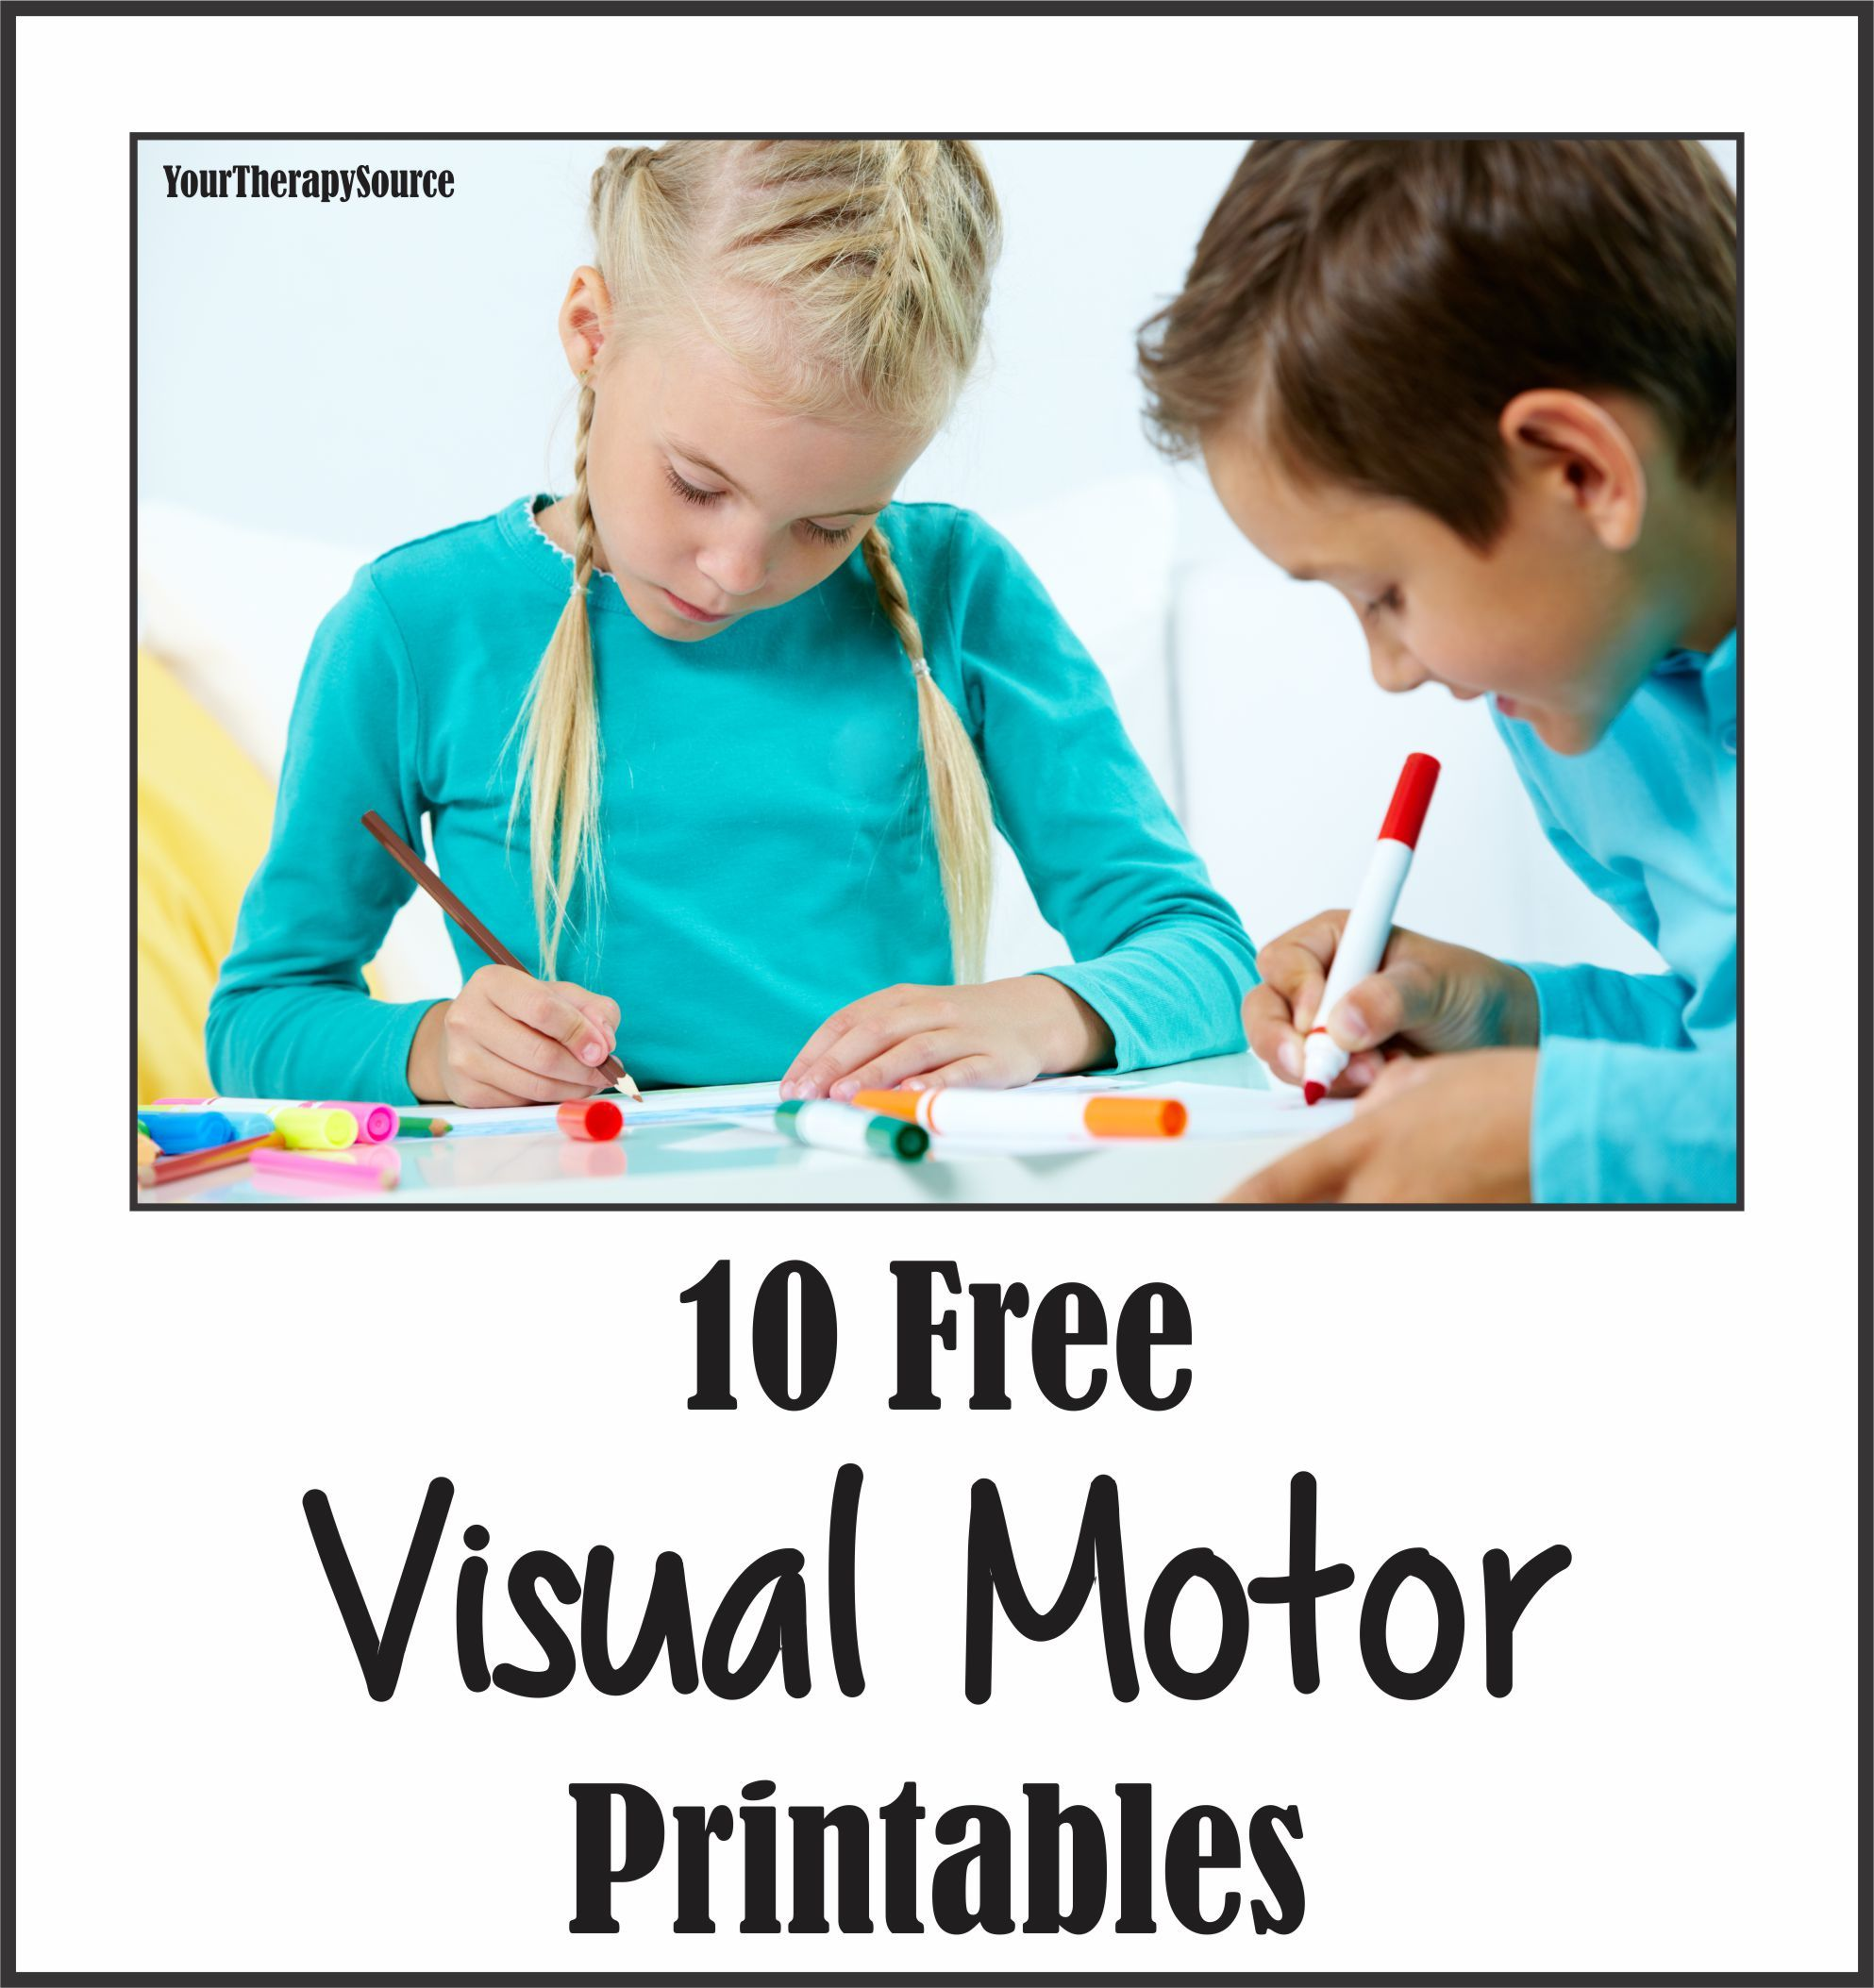 10 Free Visual Motor Printables